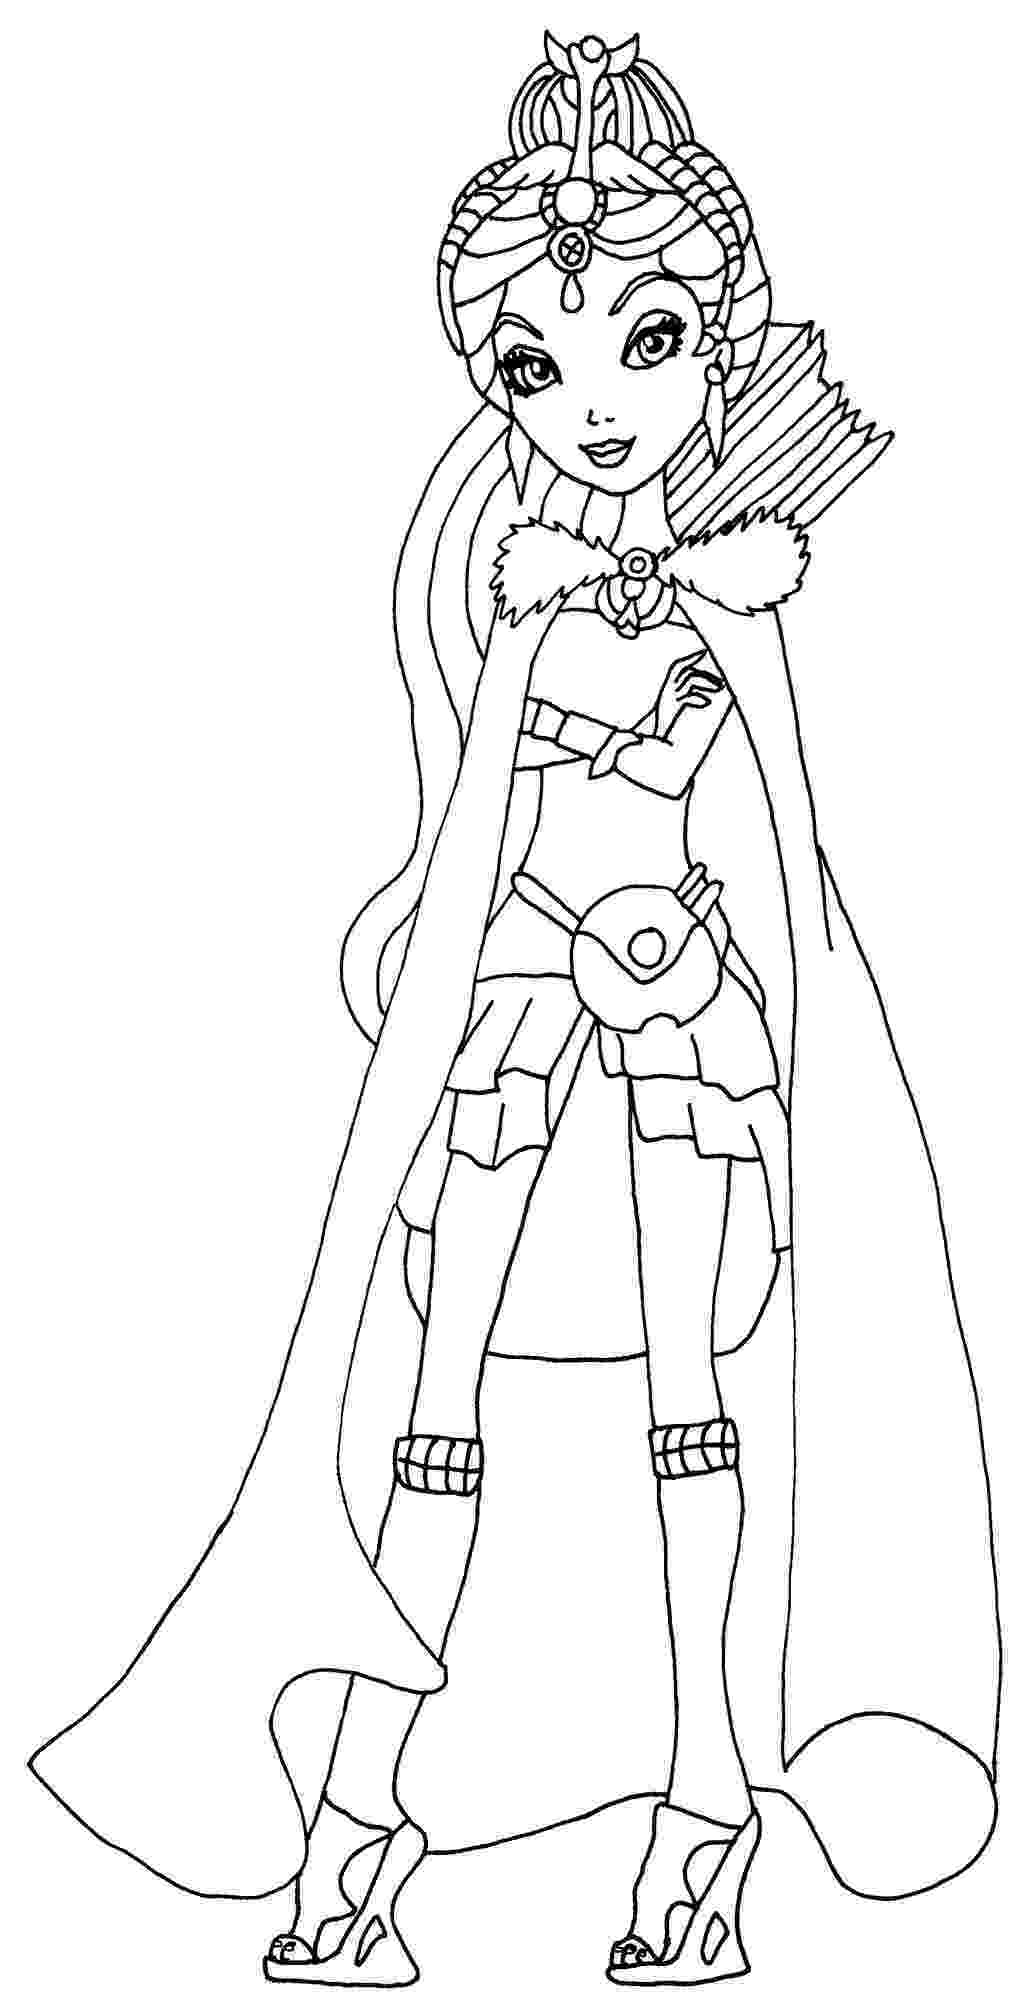 ever after high printables ever after high free coloring pages images to print printables high after ever